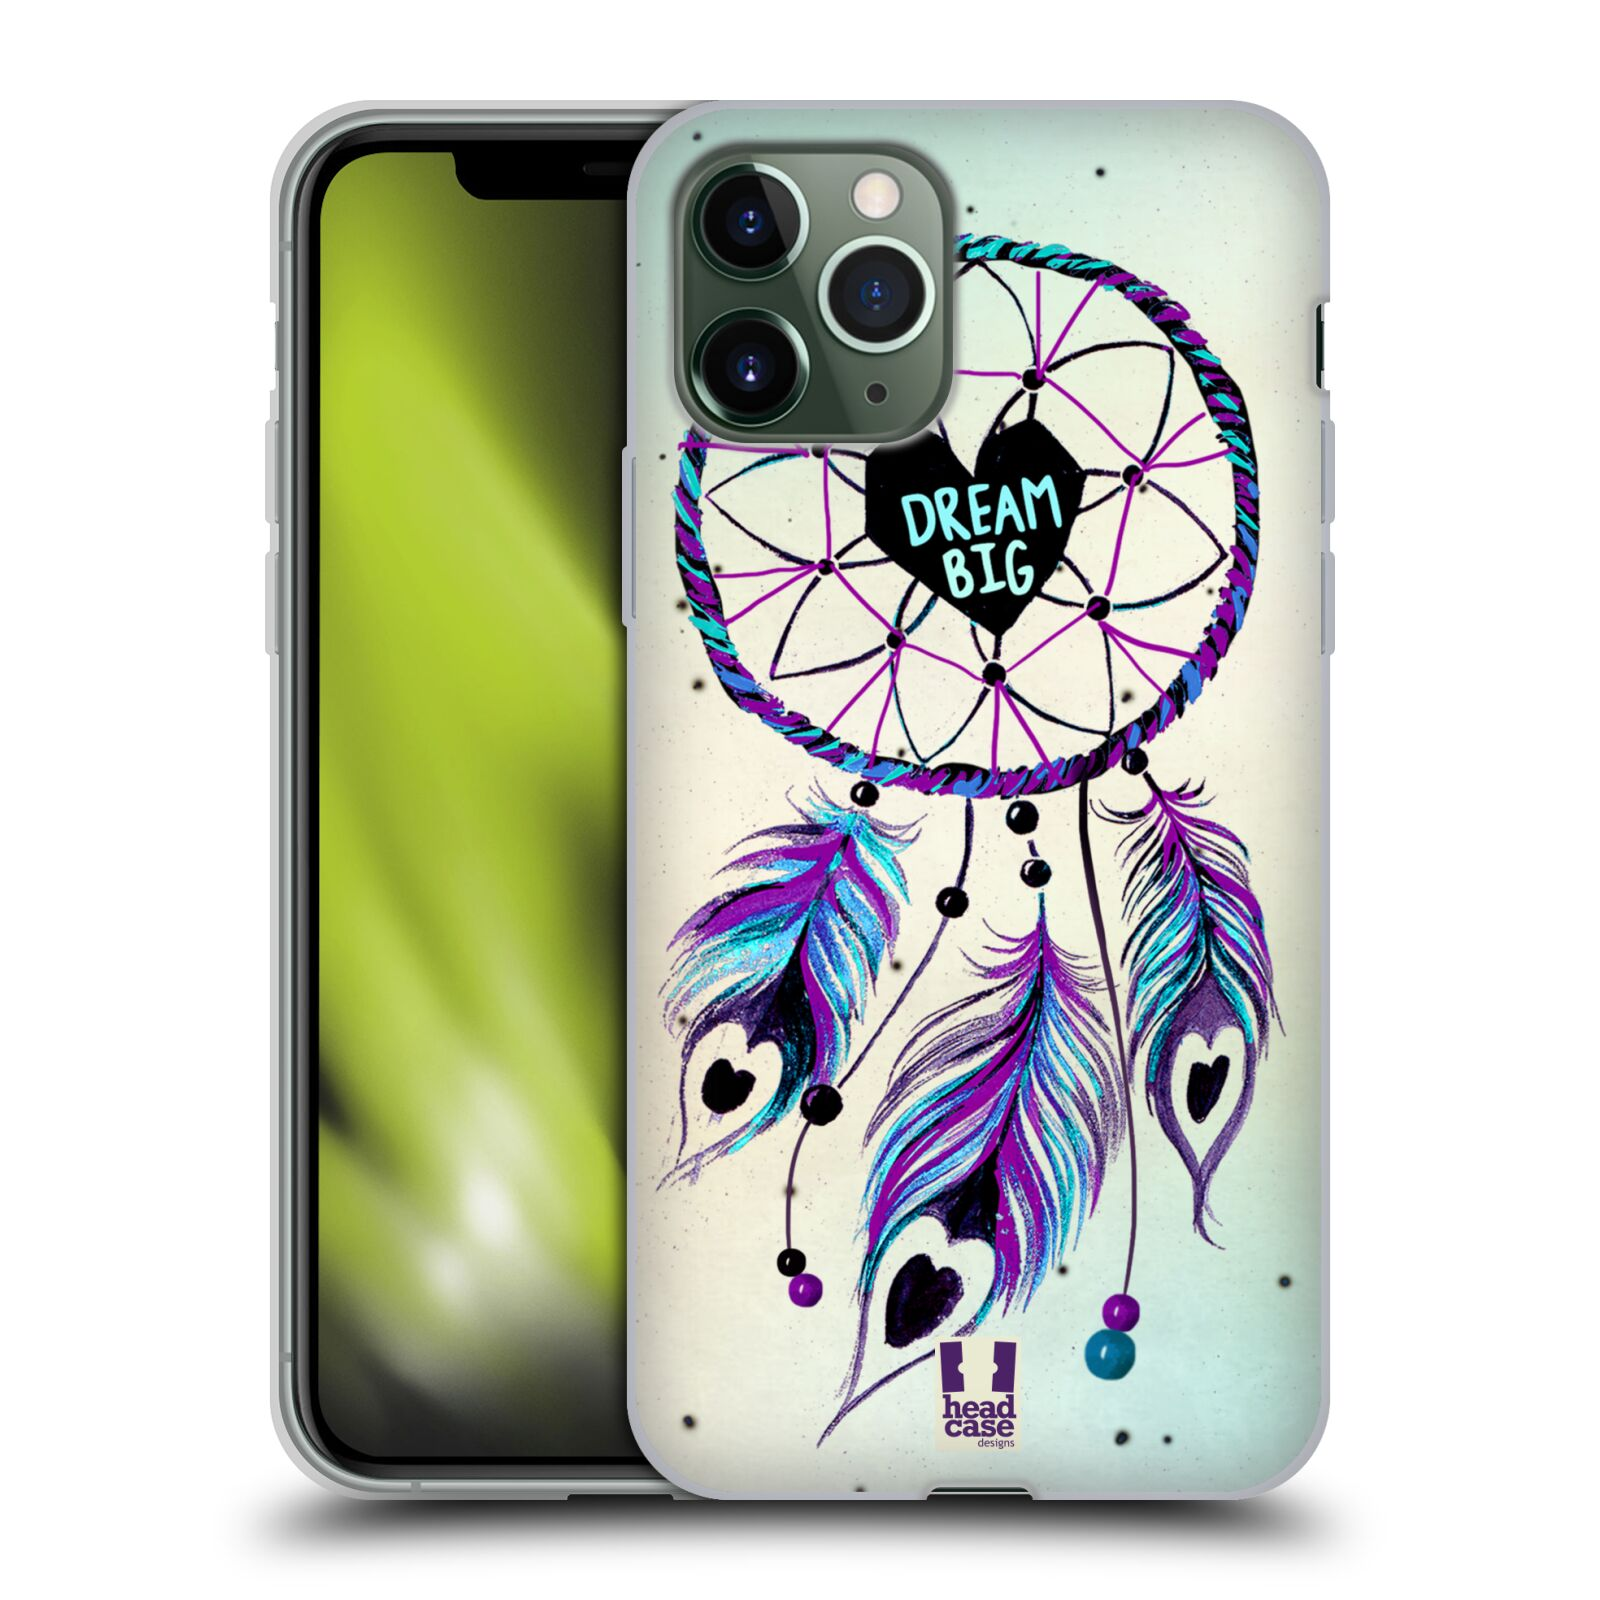 iphone obal x | Silikonové pouzdro na mobil Apple iPhone 11 Pro - Head Case - Lapač Assorted Dream Big Srdce